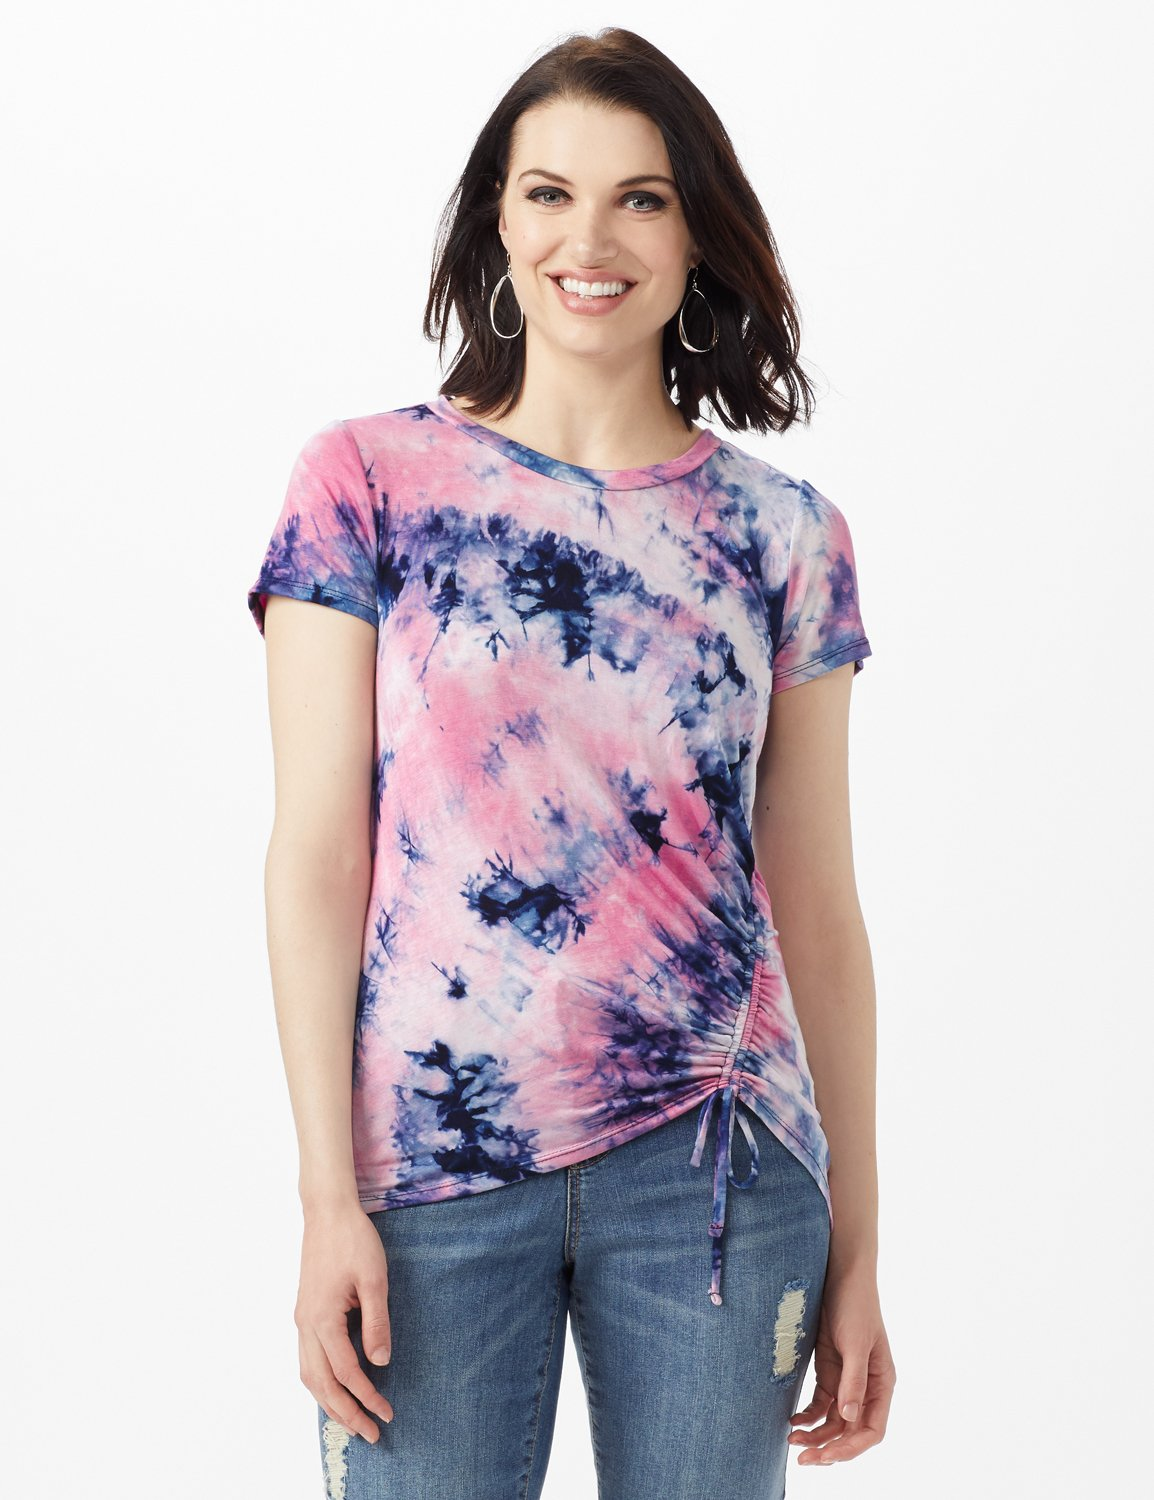 Tye Dye Ruched Tie Front Top -Pink - Front